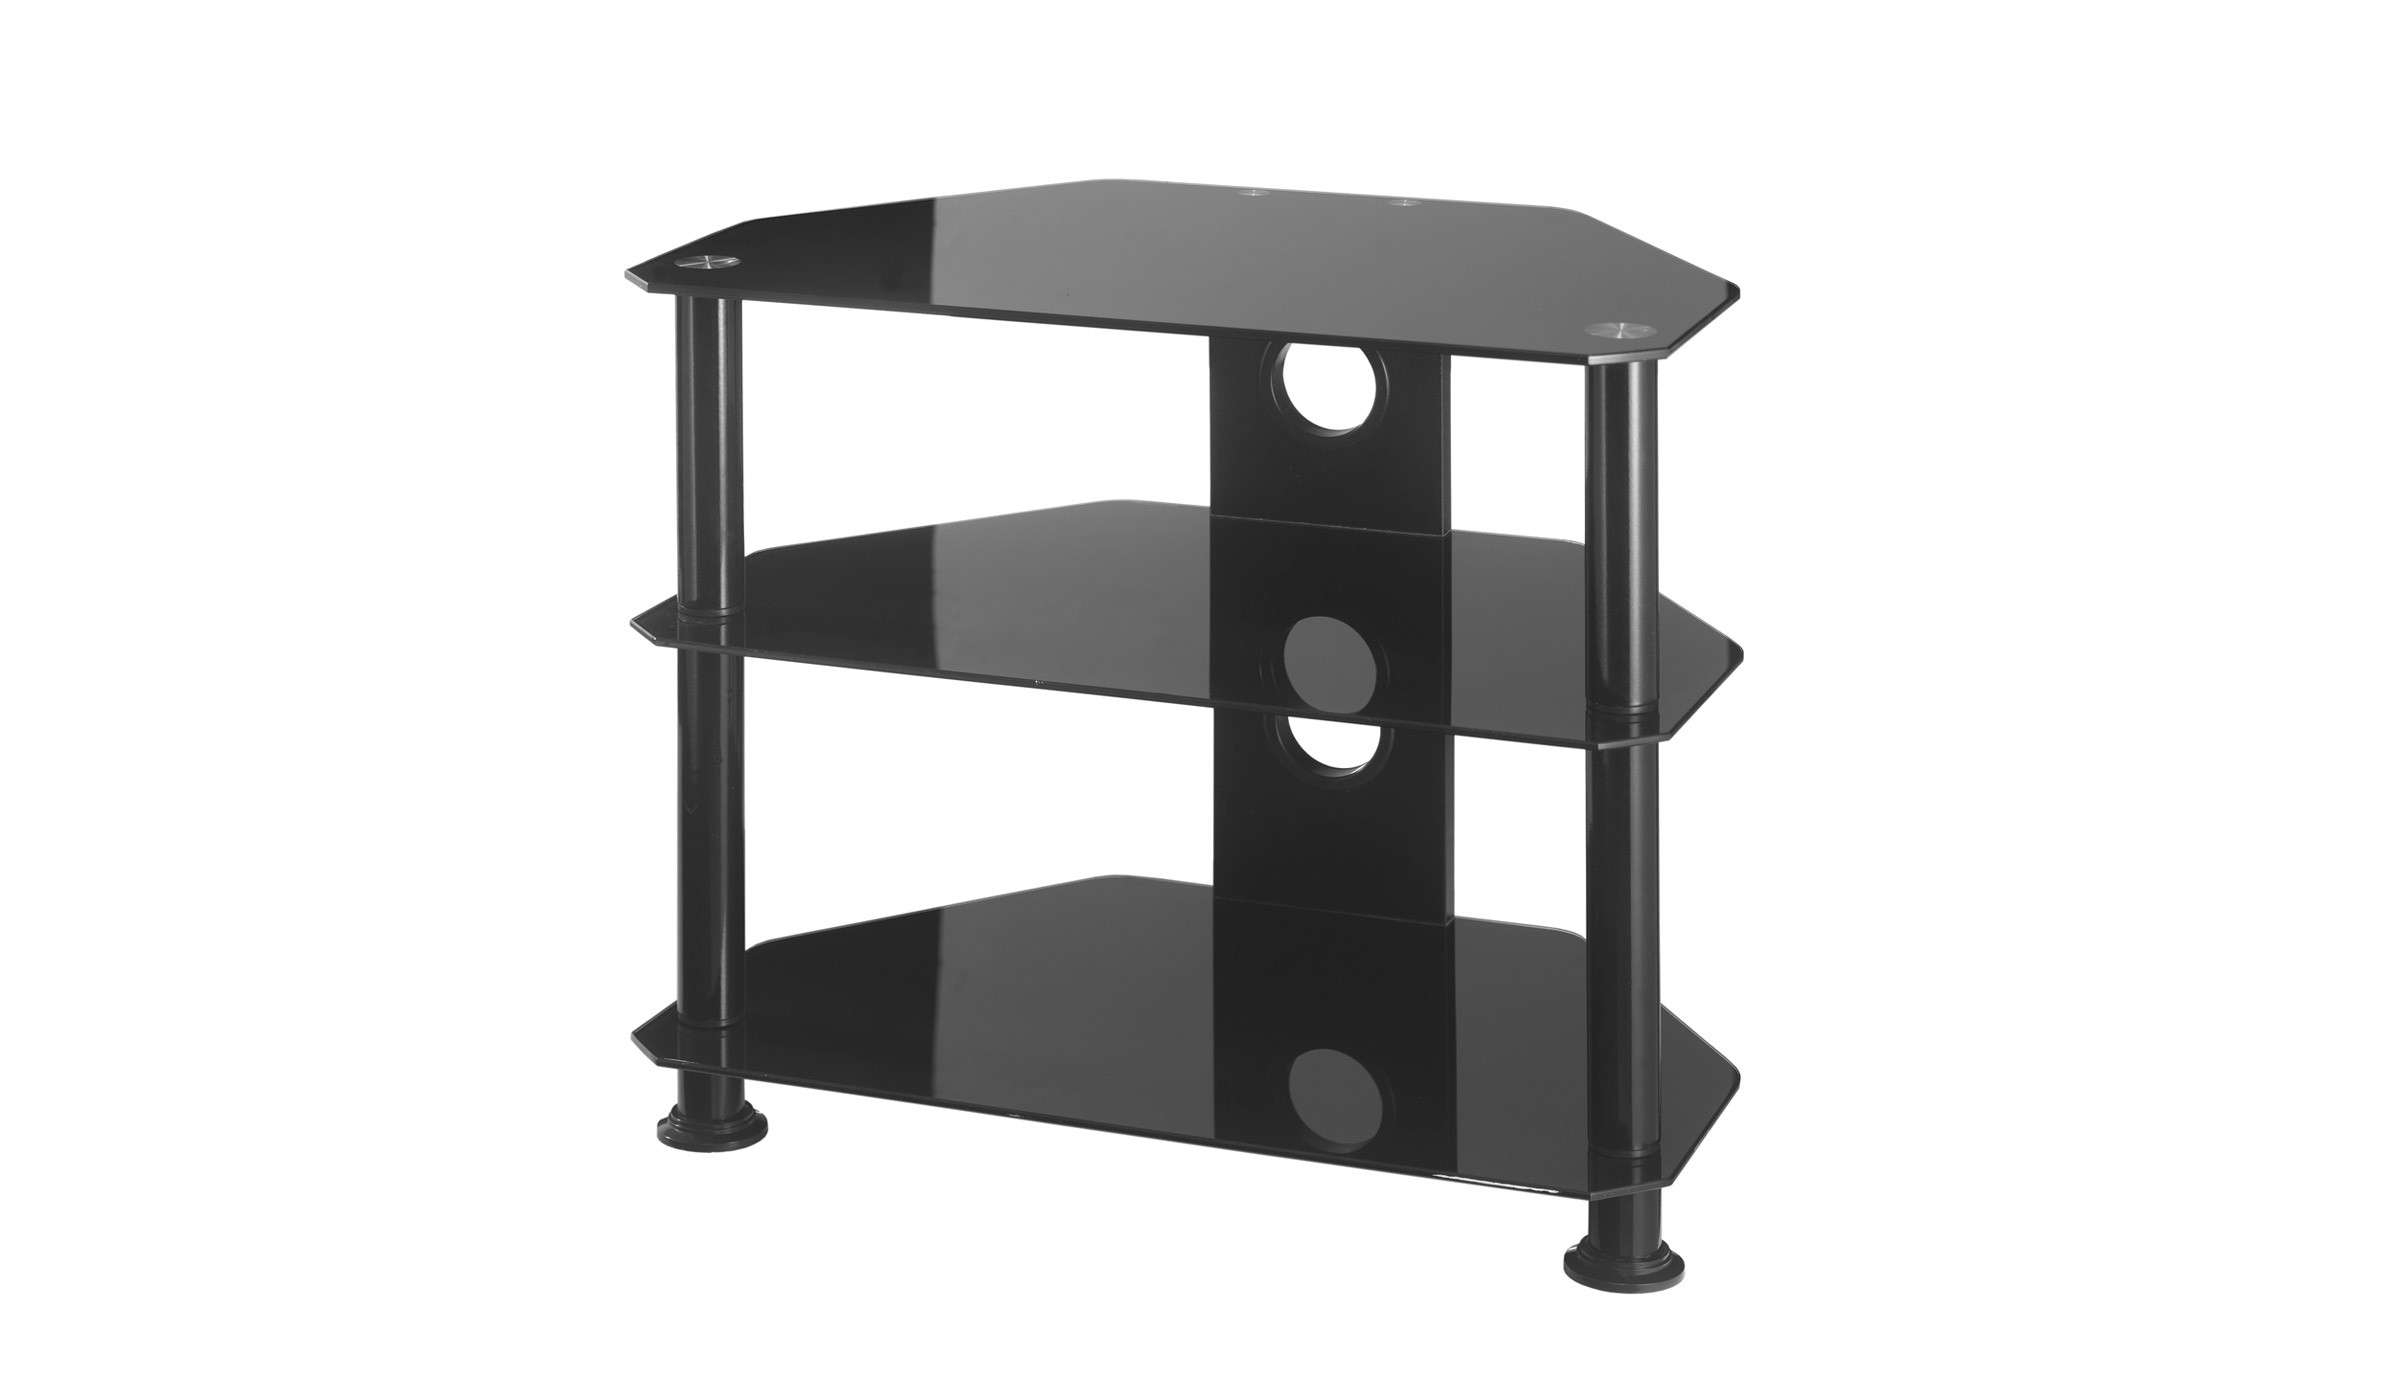 Small Glass Corner Tv Stand Up To 26 Inch Tv | Mmt Db600 Inside Small Corner Tv Stands (View 14 of 20)